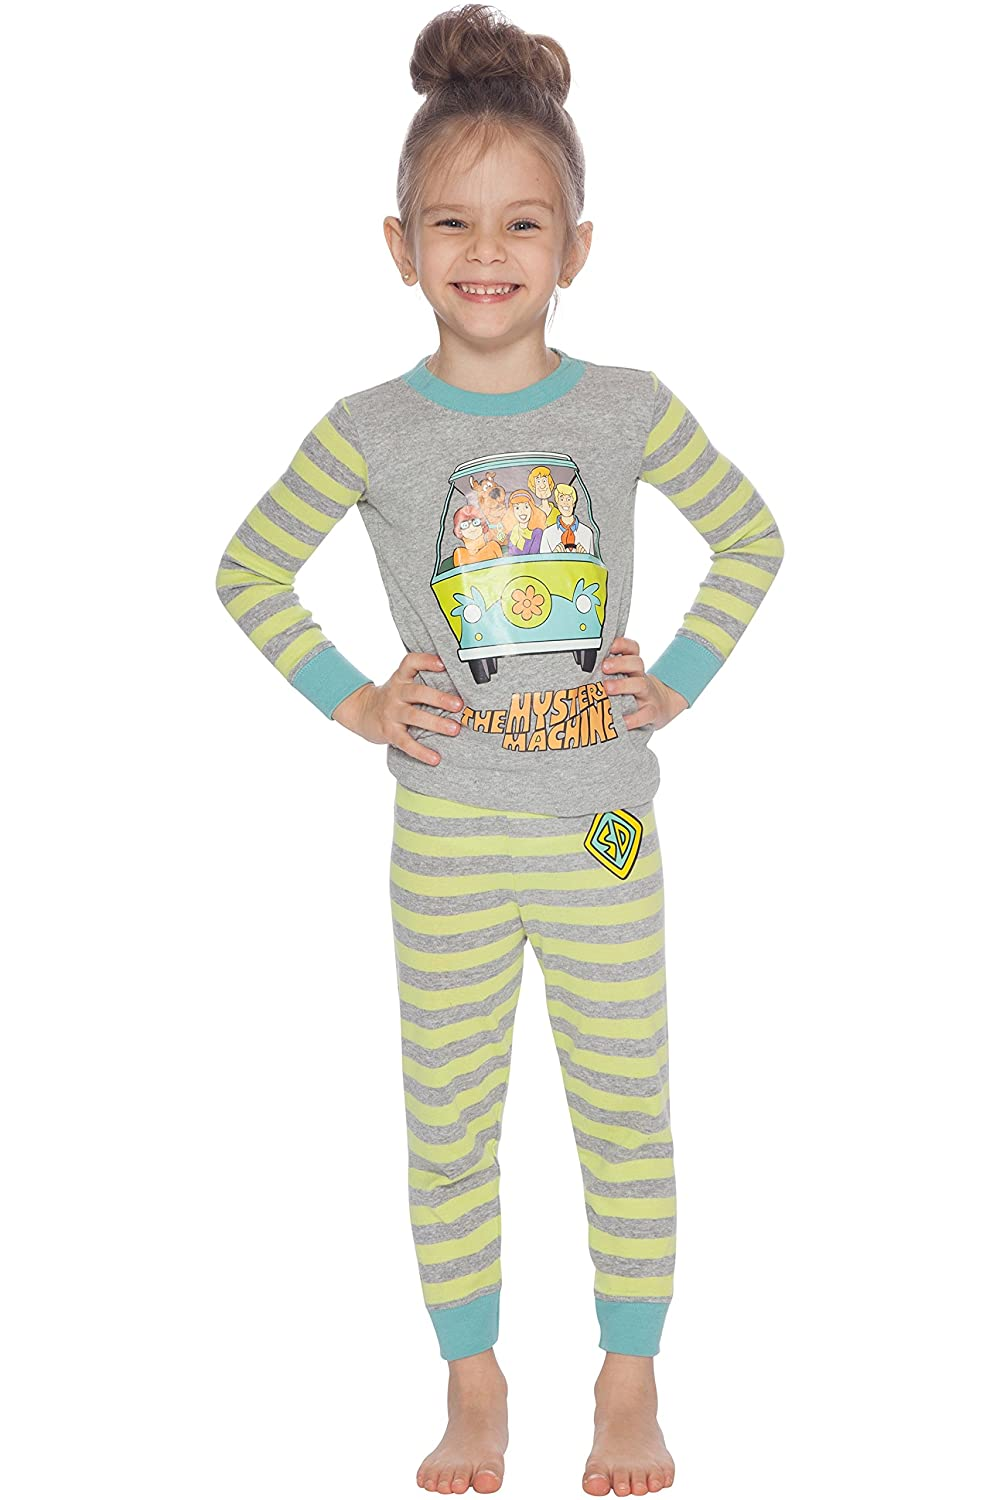 66726ee065 Amazon.com  Scooby Doo Boys Mystery Machine Pajama Set  Clothing